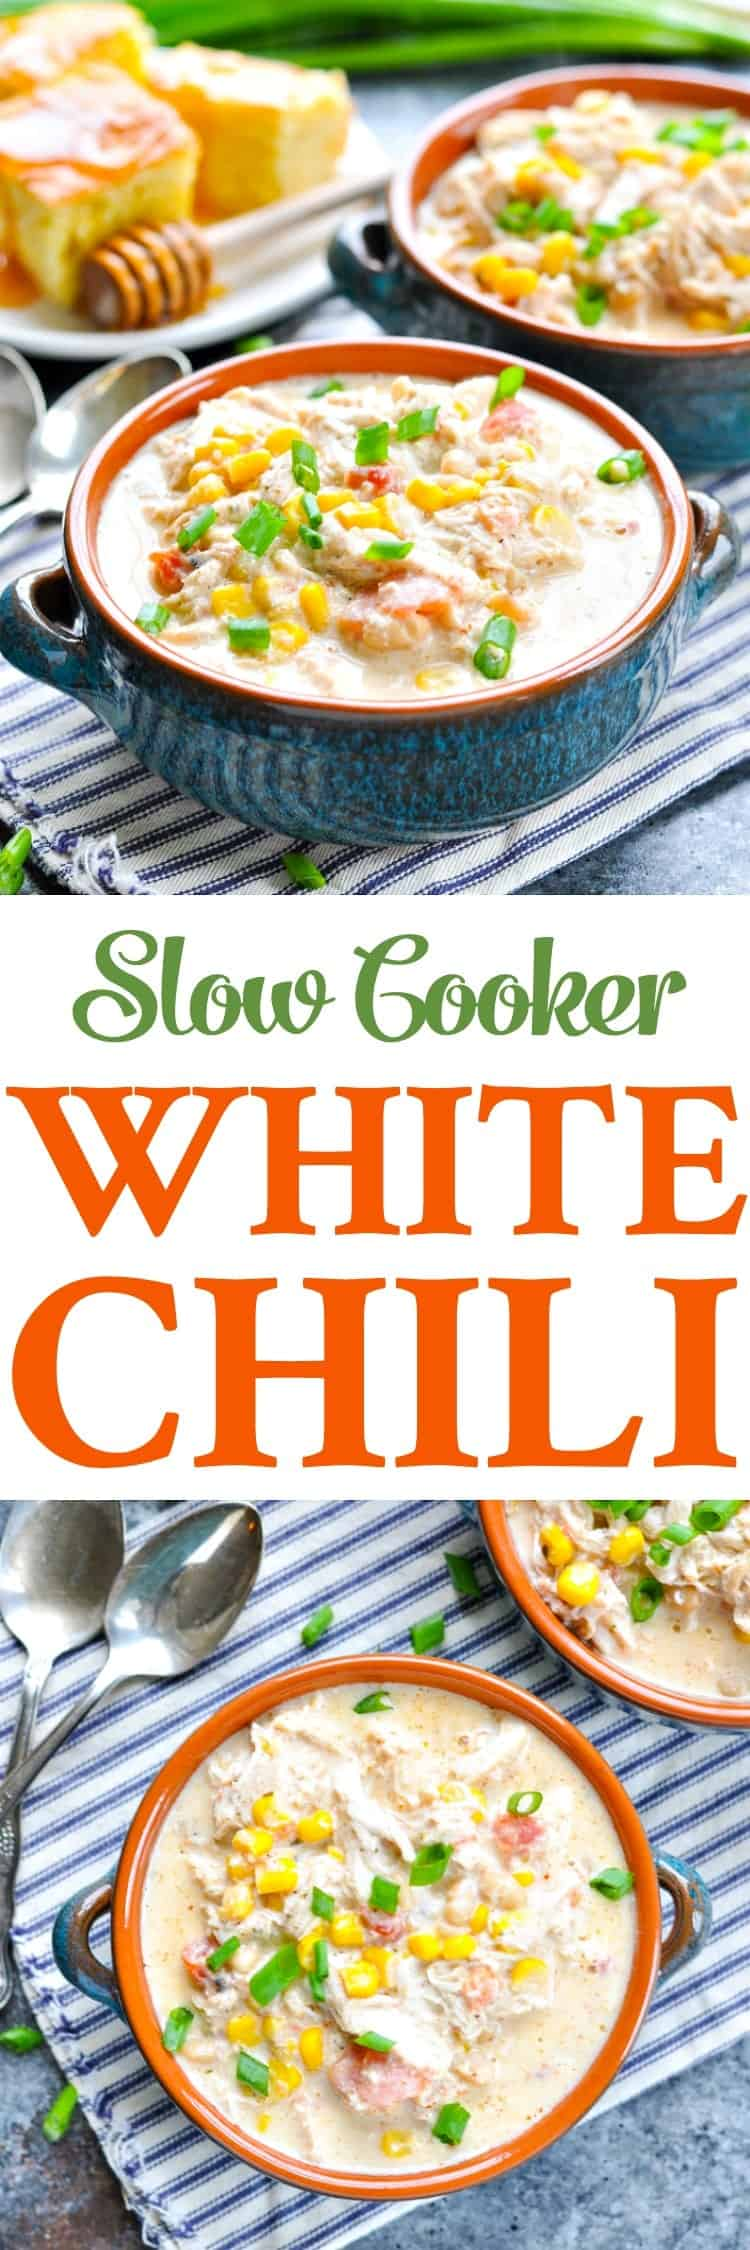 This is the easiest and the best Slow Cooker White Chili that you will ever make! Chicken Breast Recipes | Slow Cooker Recipes | Slow Cooker Chicken #dinner #chili #slowcooker #chicken